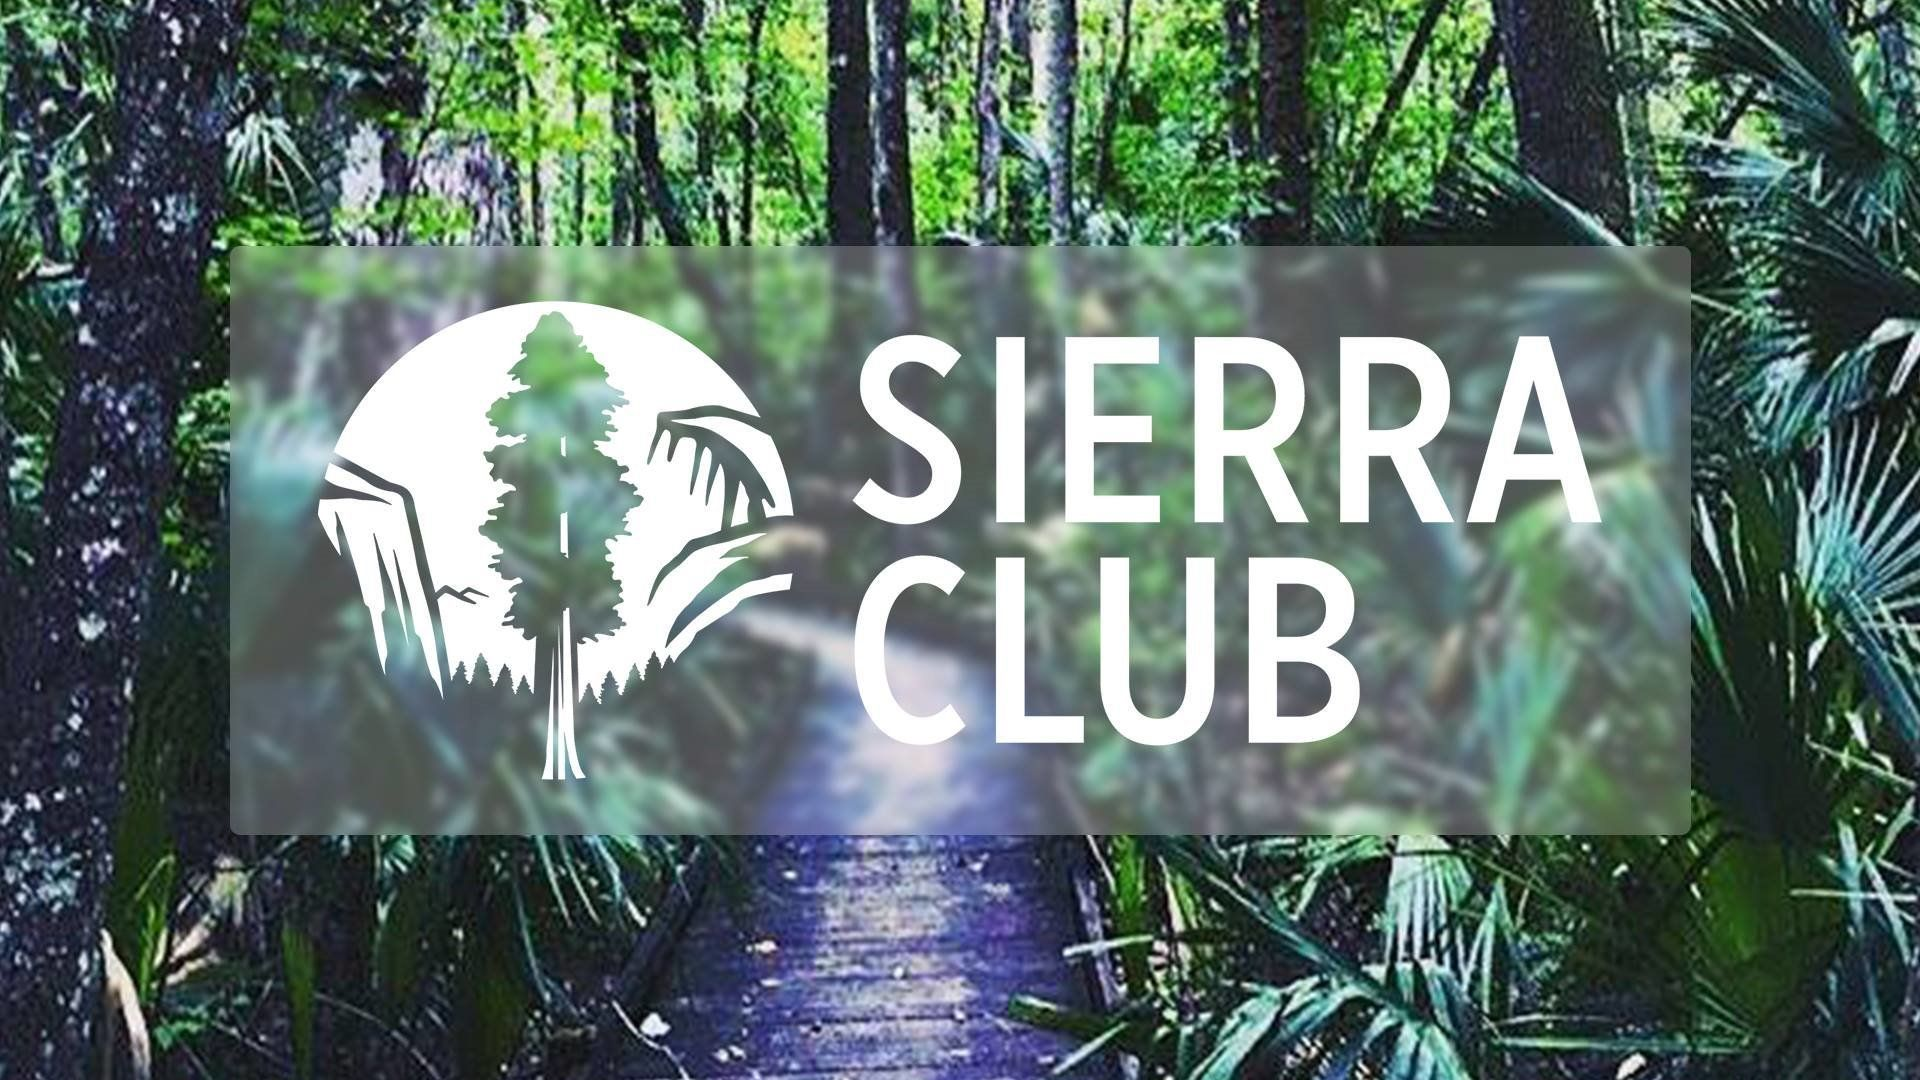 Sierra Club Groups of the Greater Tampa Bay Florida Area